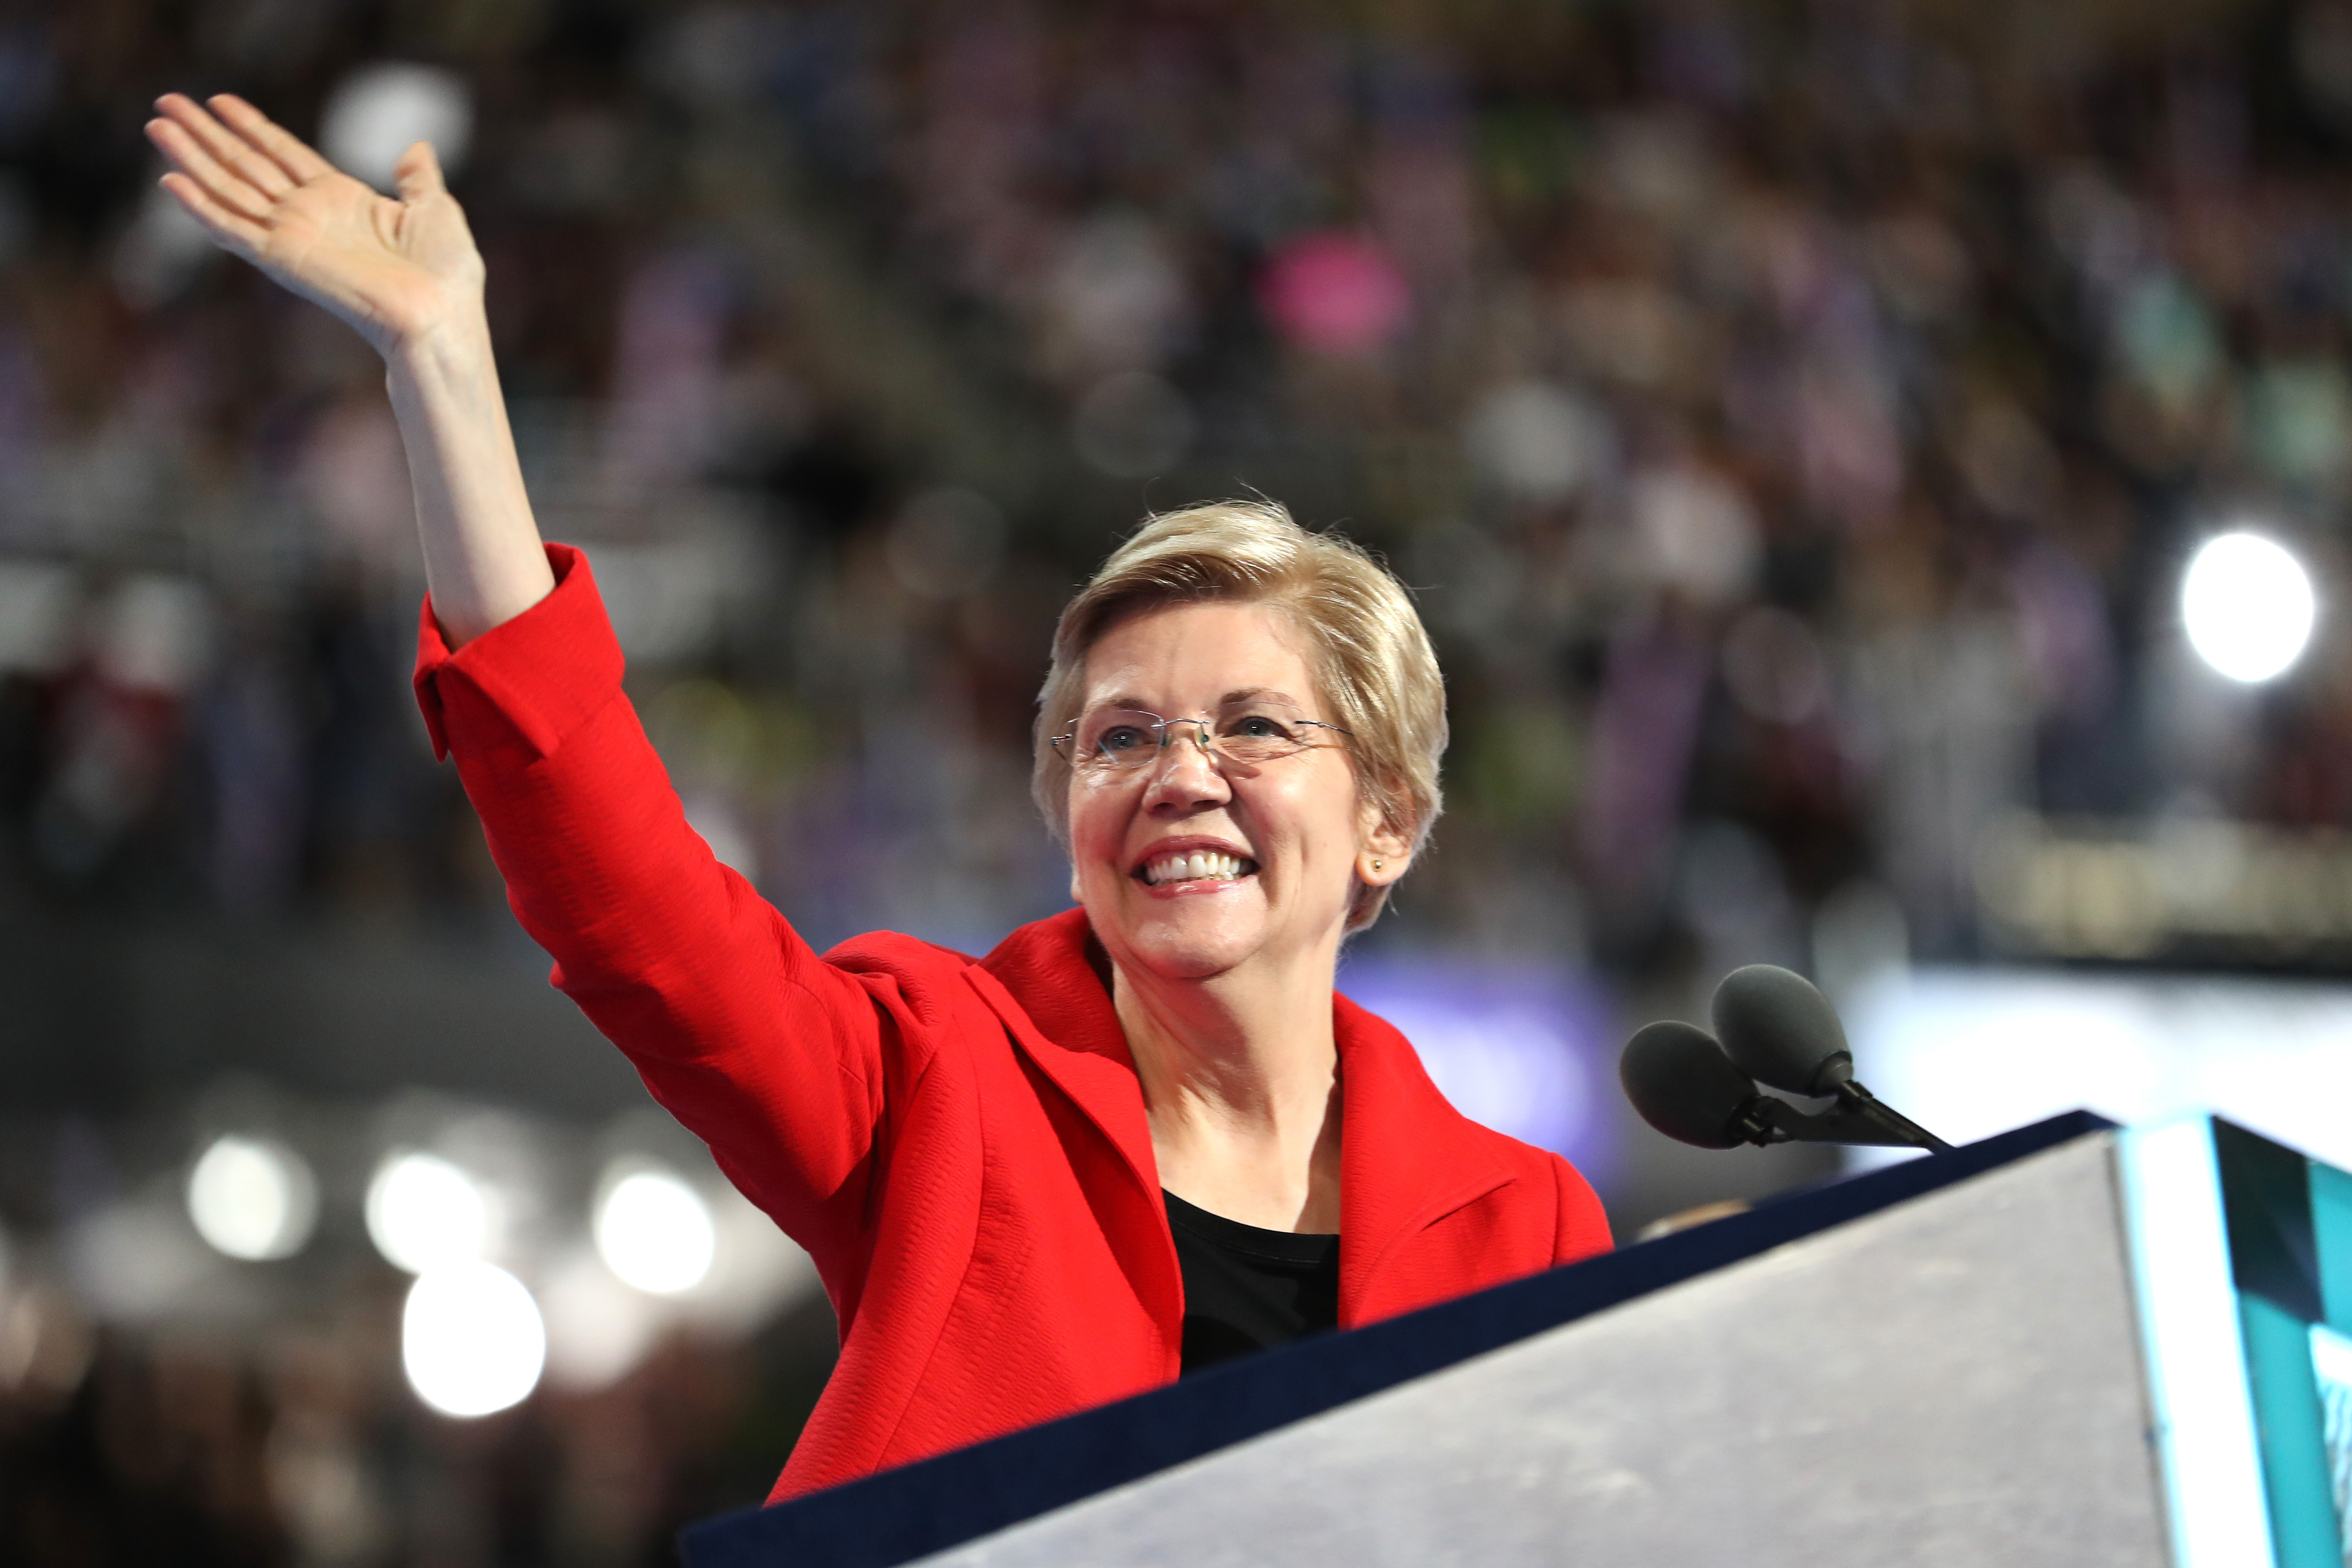 Sen. Elizabeth Warren (D-MA) acknowledges the crowd as she walks on stage to deliver remarks on the first day of the Democratic National Convention at the Wells Fargo Center, July 25, 2016 in Philadelphia, Pennsylvania.(Photo by Joe Raedle/Getty Images)